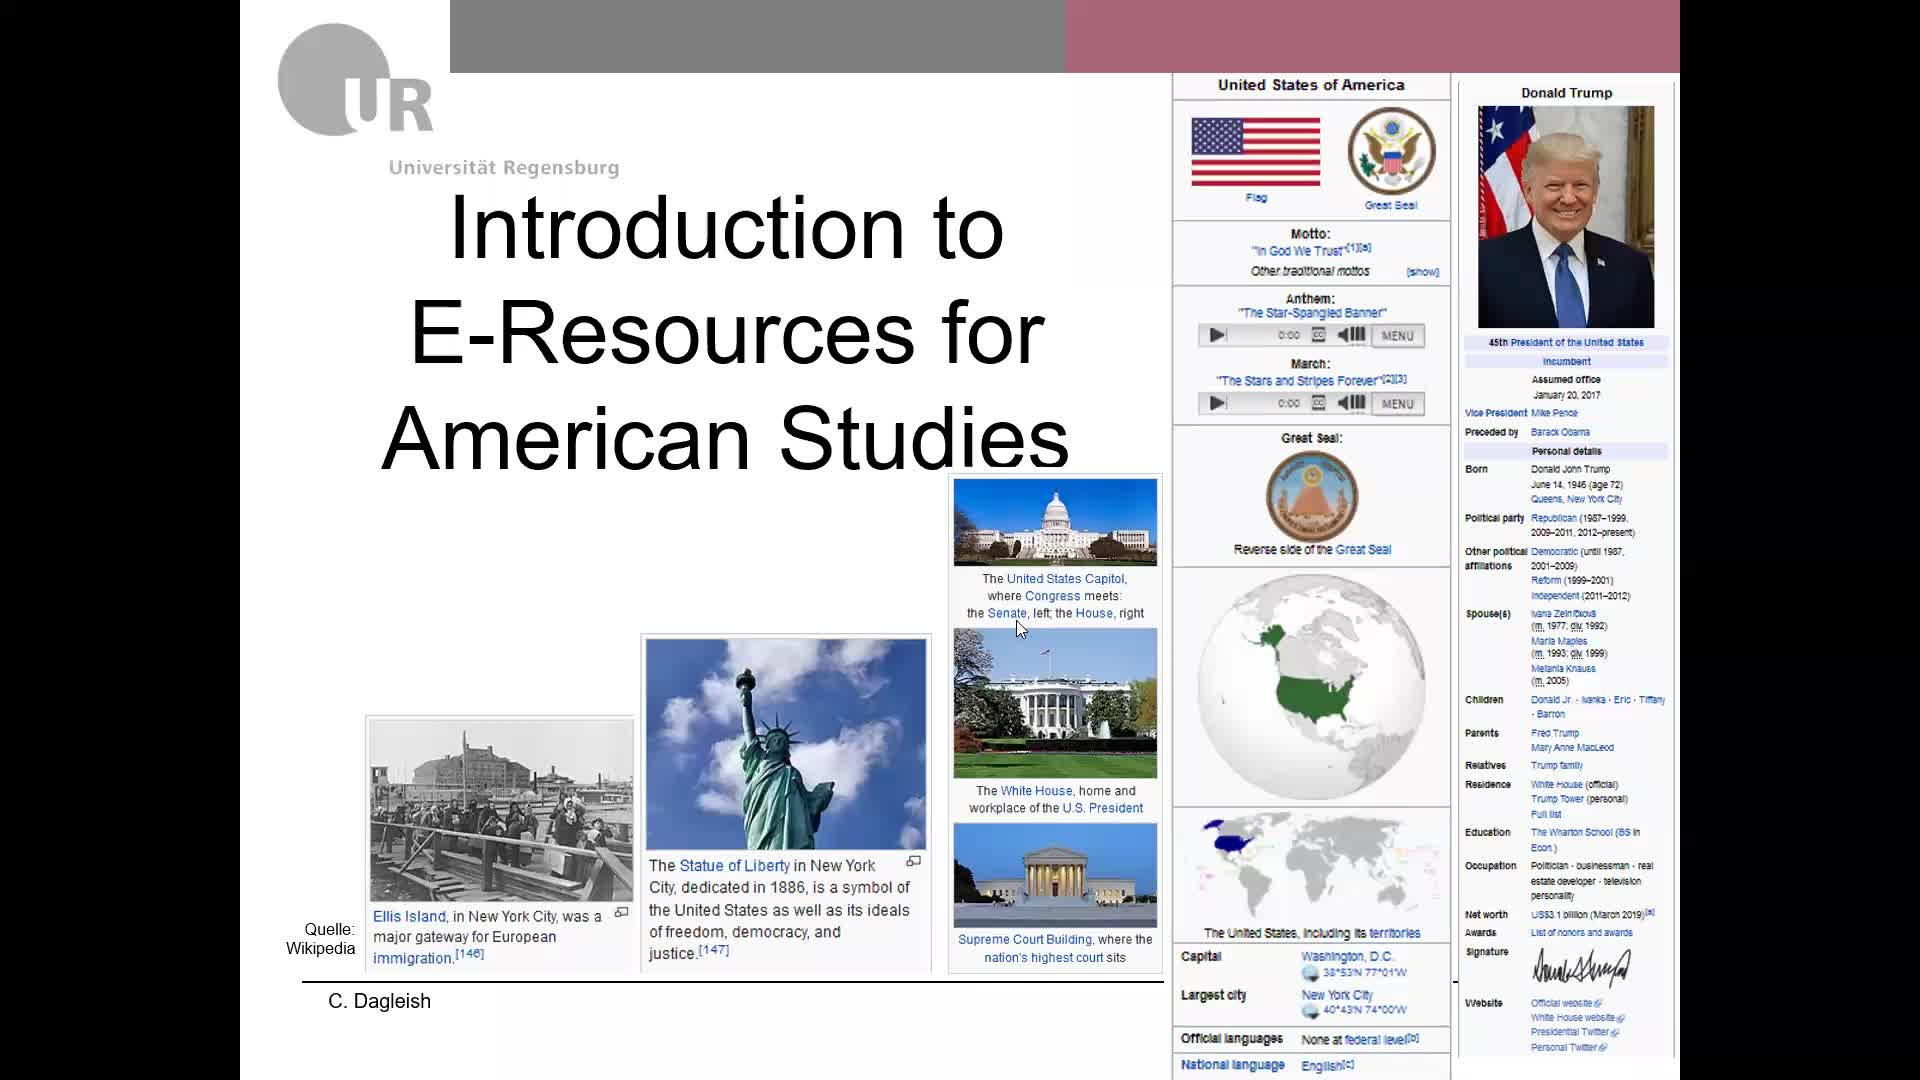 American Studies E-Resources by C. Dagleish